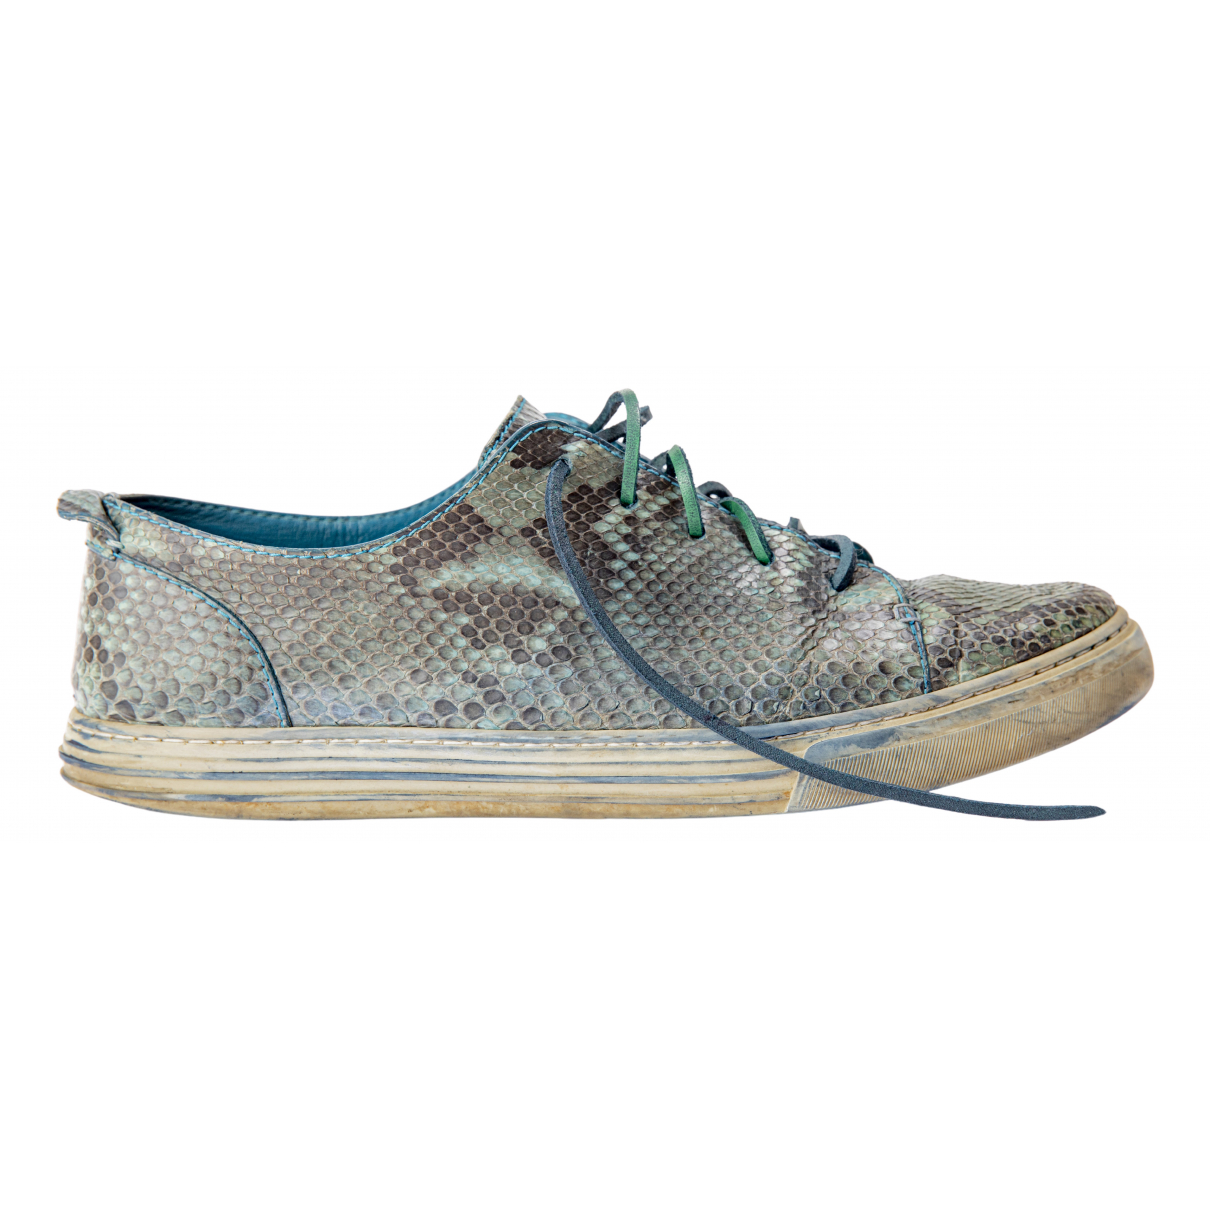 Gucci N Green Python Trainers for Men 11 UK